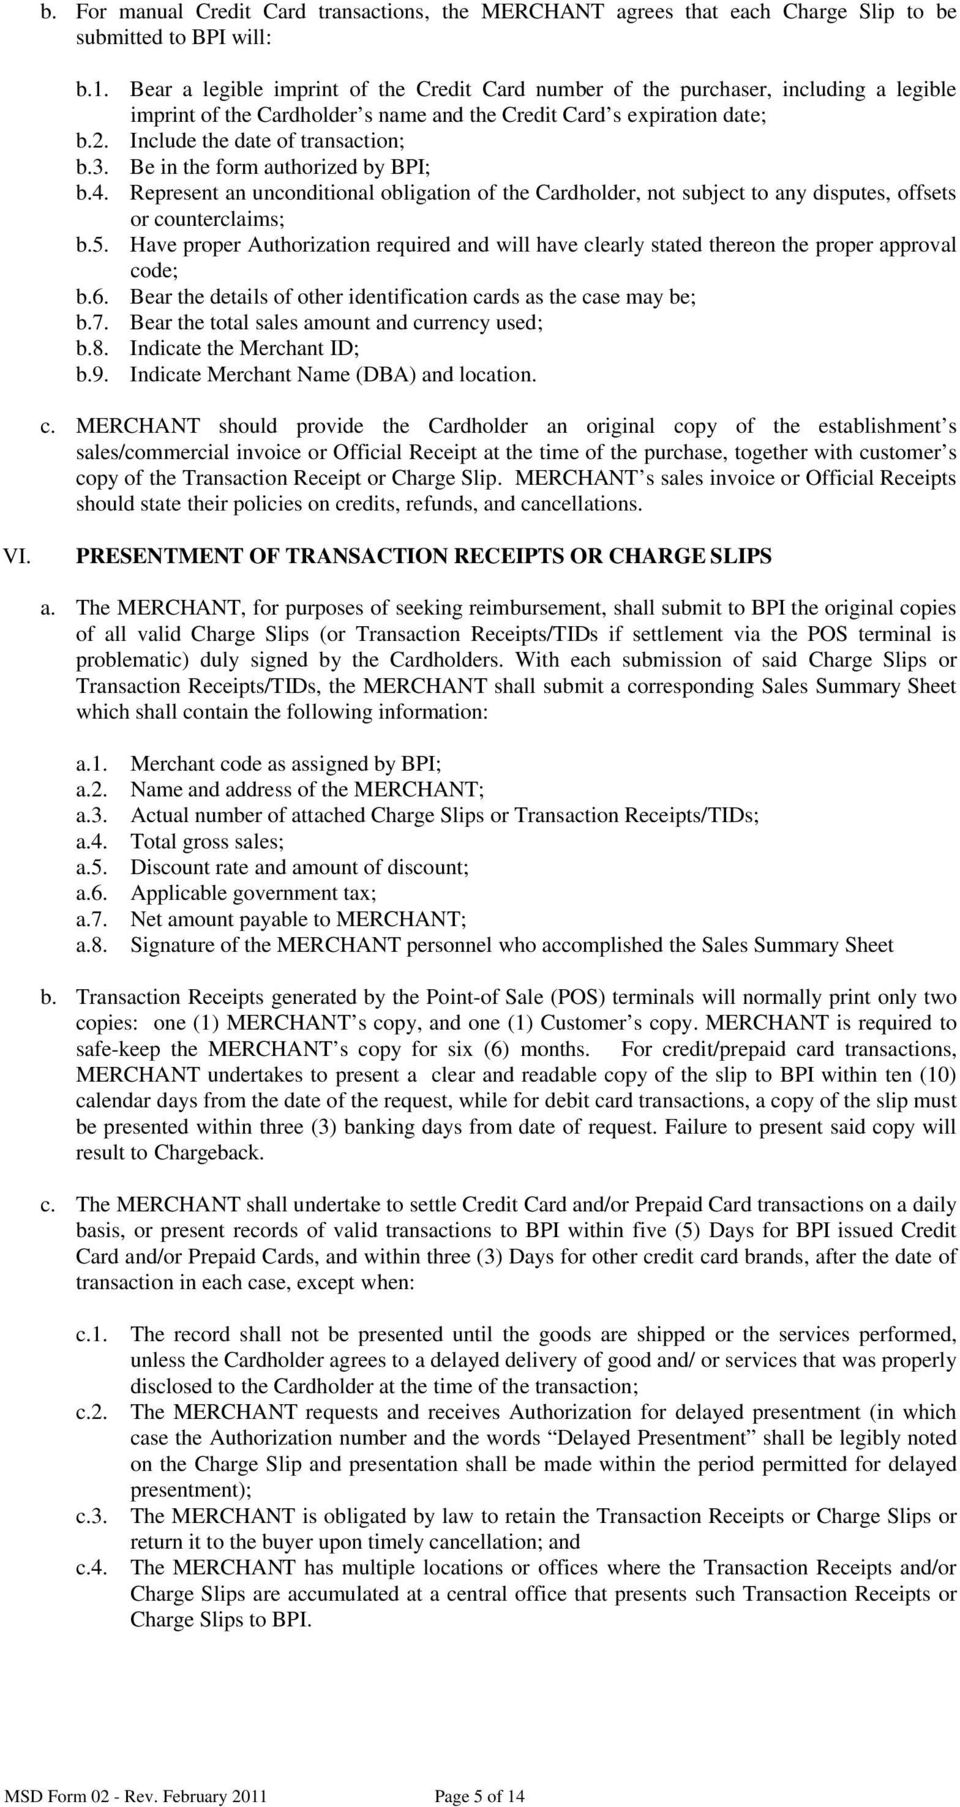 the form authorized by BPI; Represent an unconditional obligation of the Cardholder, not subject to any disputes, offsets or counterclaims; Have proper Authorization required and will have clearly